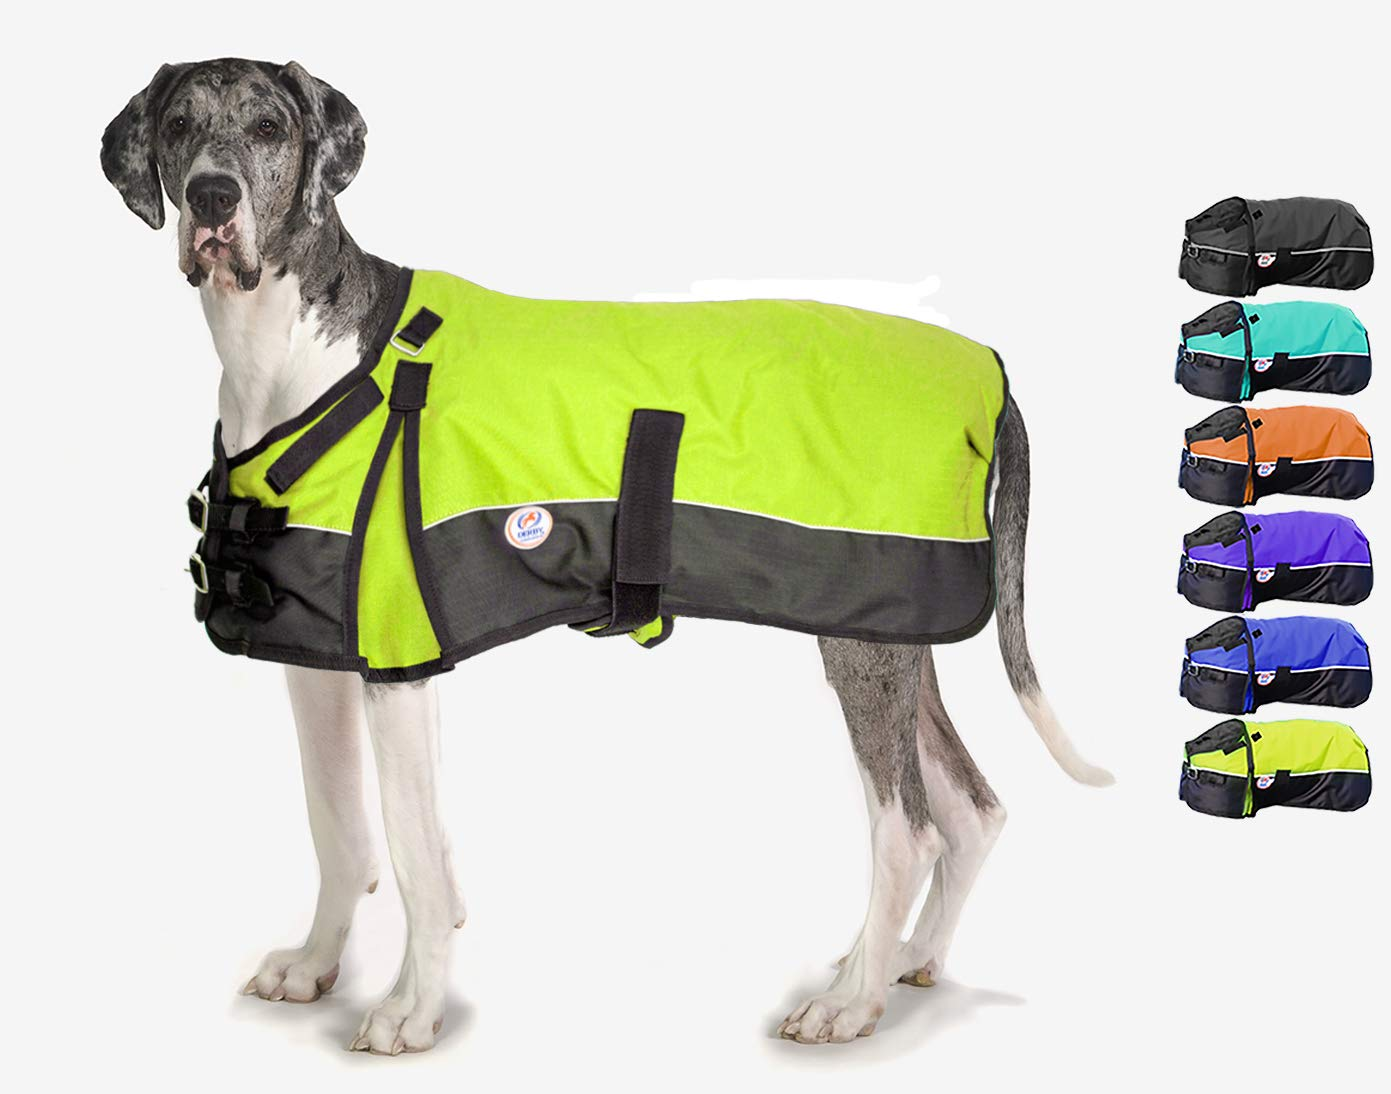 Derby Originals Medium Weight Waterproof Dog Coat with 1 Year Warranty 150G Polyfil & Horse-Tough 600D Ripstop Exterior - Two Tone Design in Multiple Colors & Sizes by Derby Originals